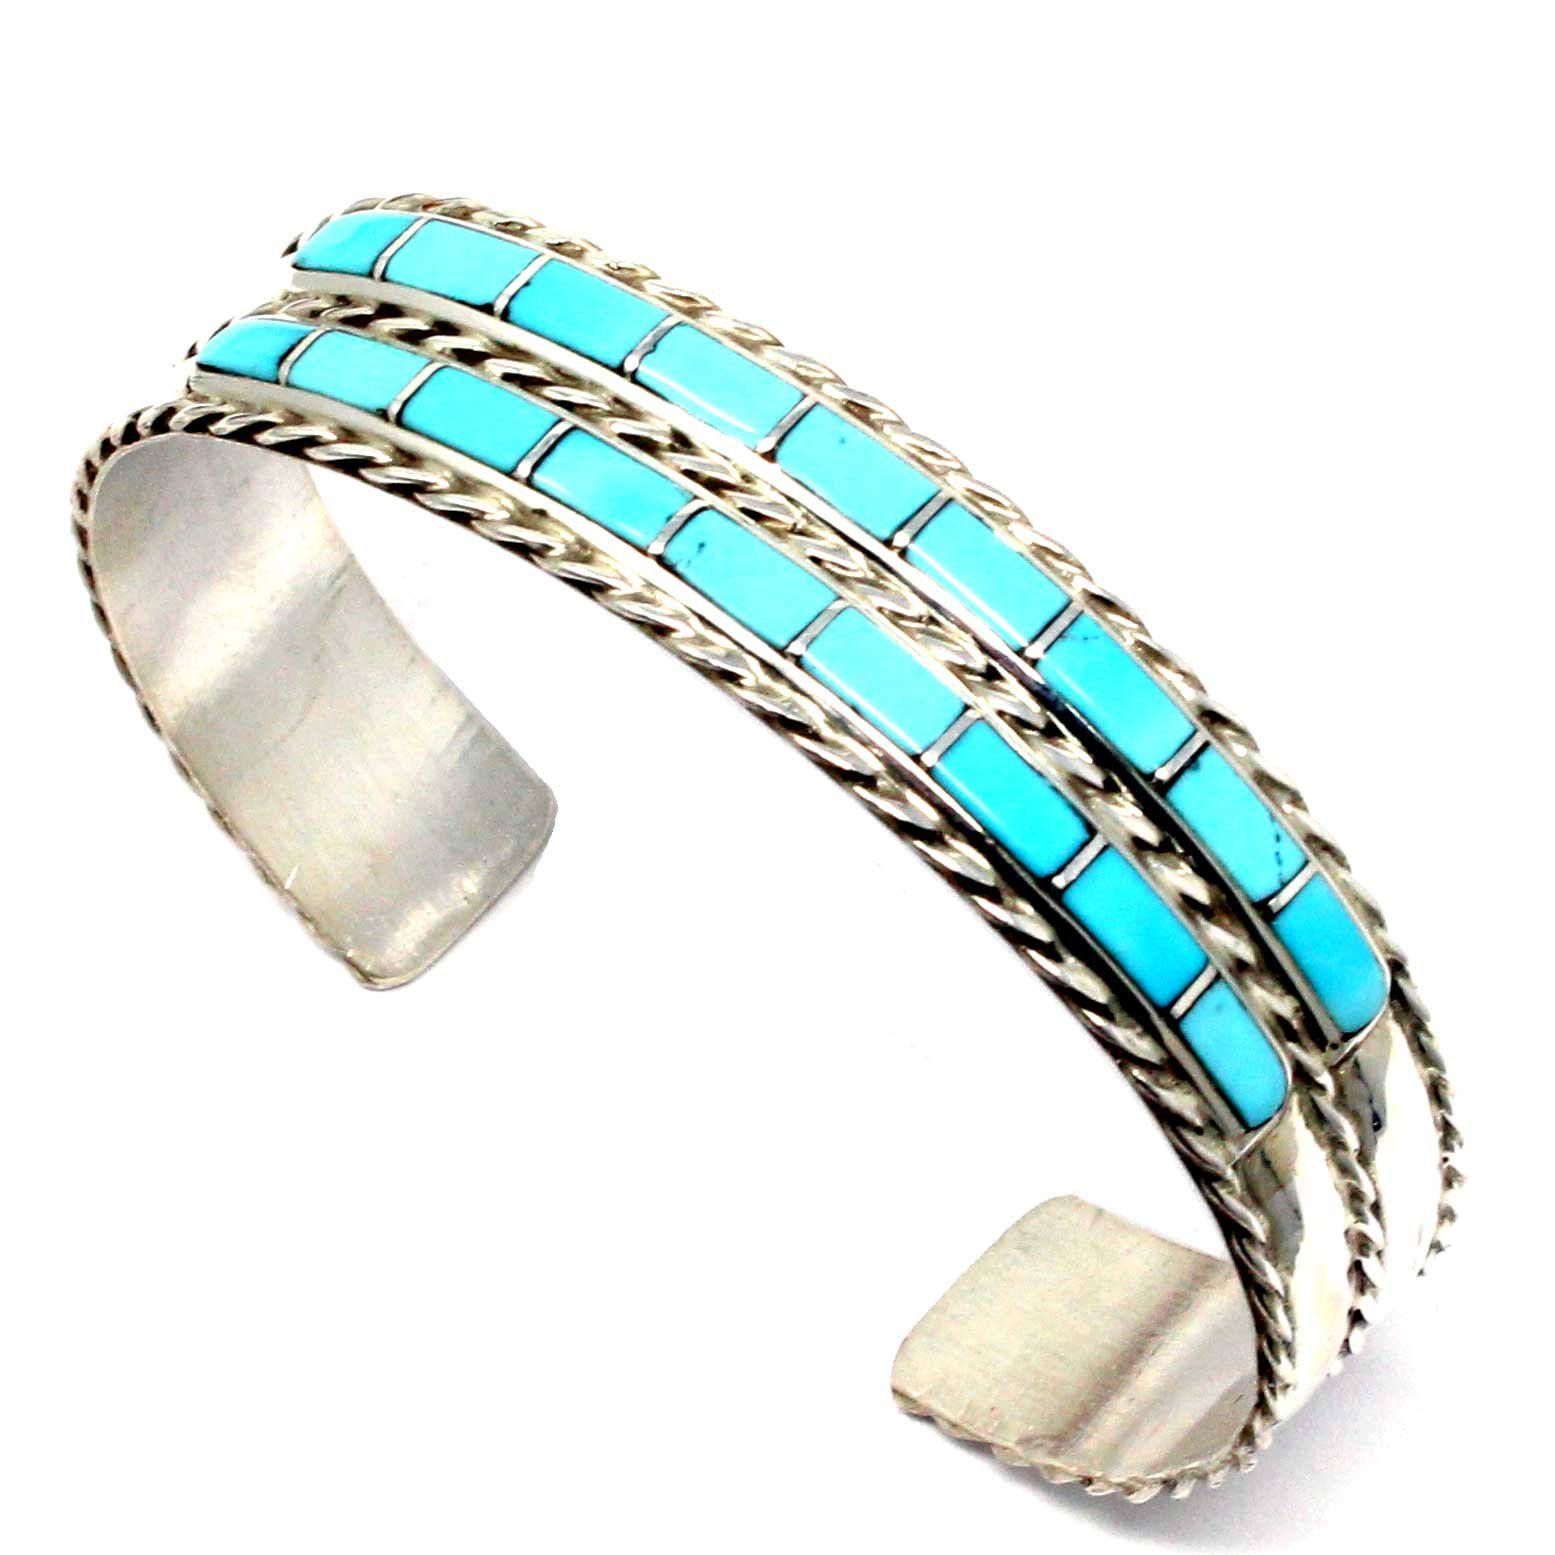 L7 Enterprises Zuni Double Row Multi Color Inlay Bracelet by Chavez | 5 2/5'' Tip to Tip (Fits a wrist of up to 6.25'' in circumference) (Stabilized-turquoise)